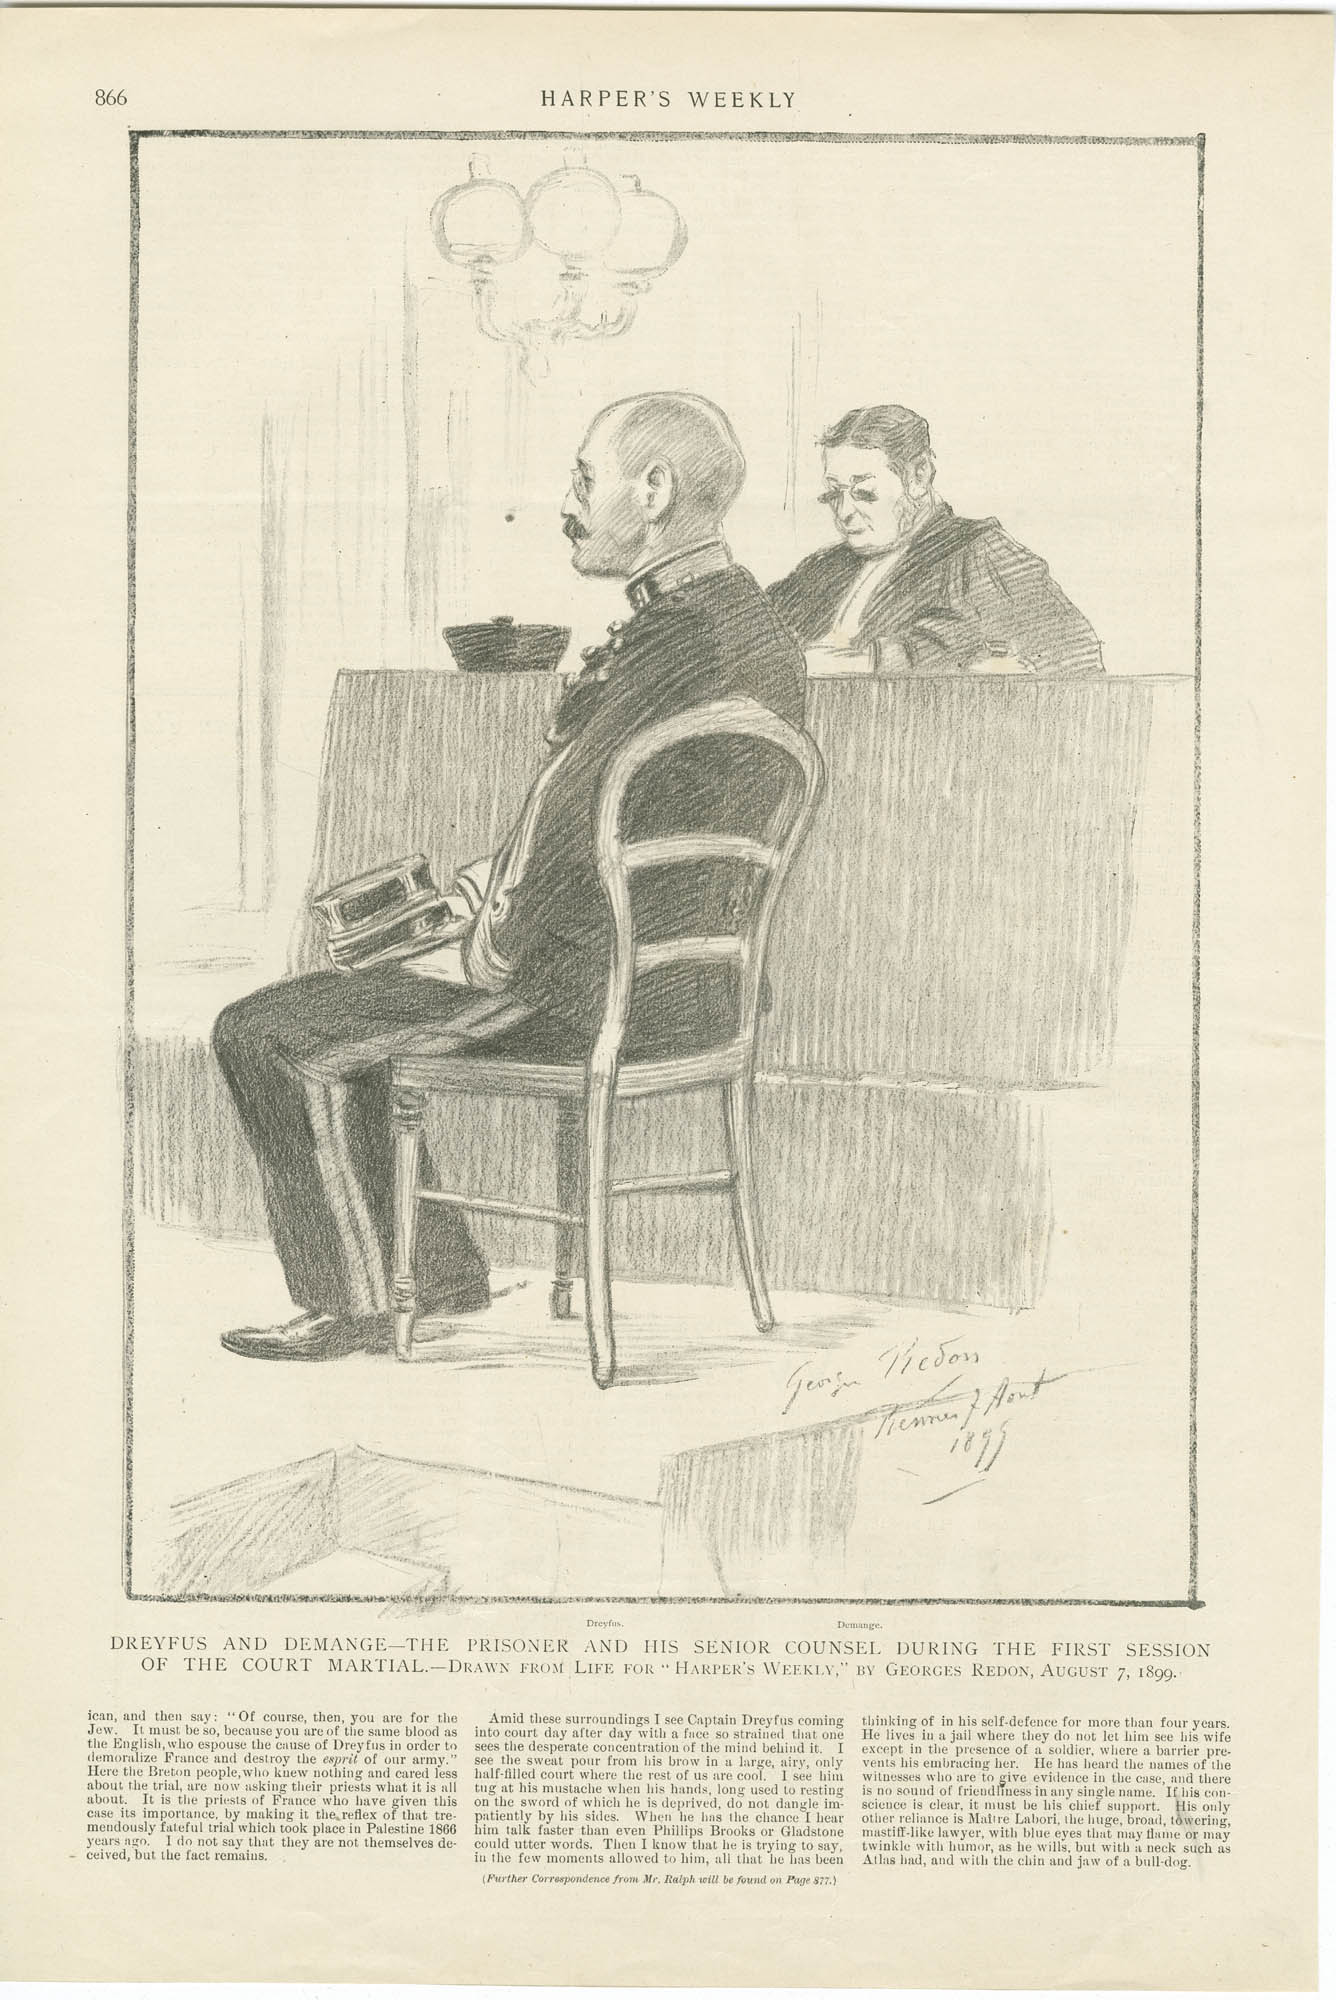 Dreyfus and Demange - the prisoner and his senior counsel during the first session of the court martial